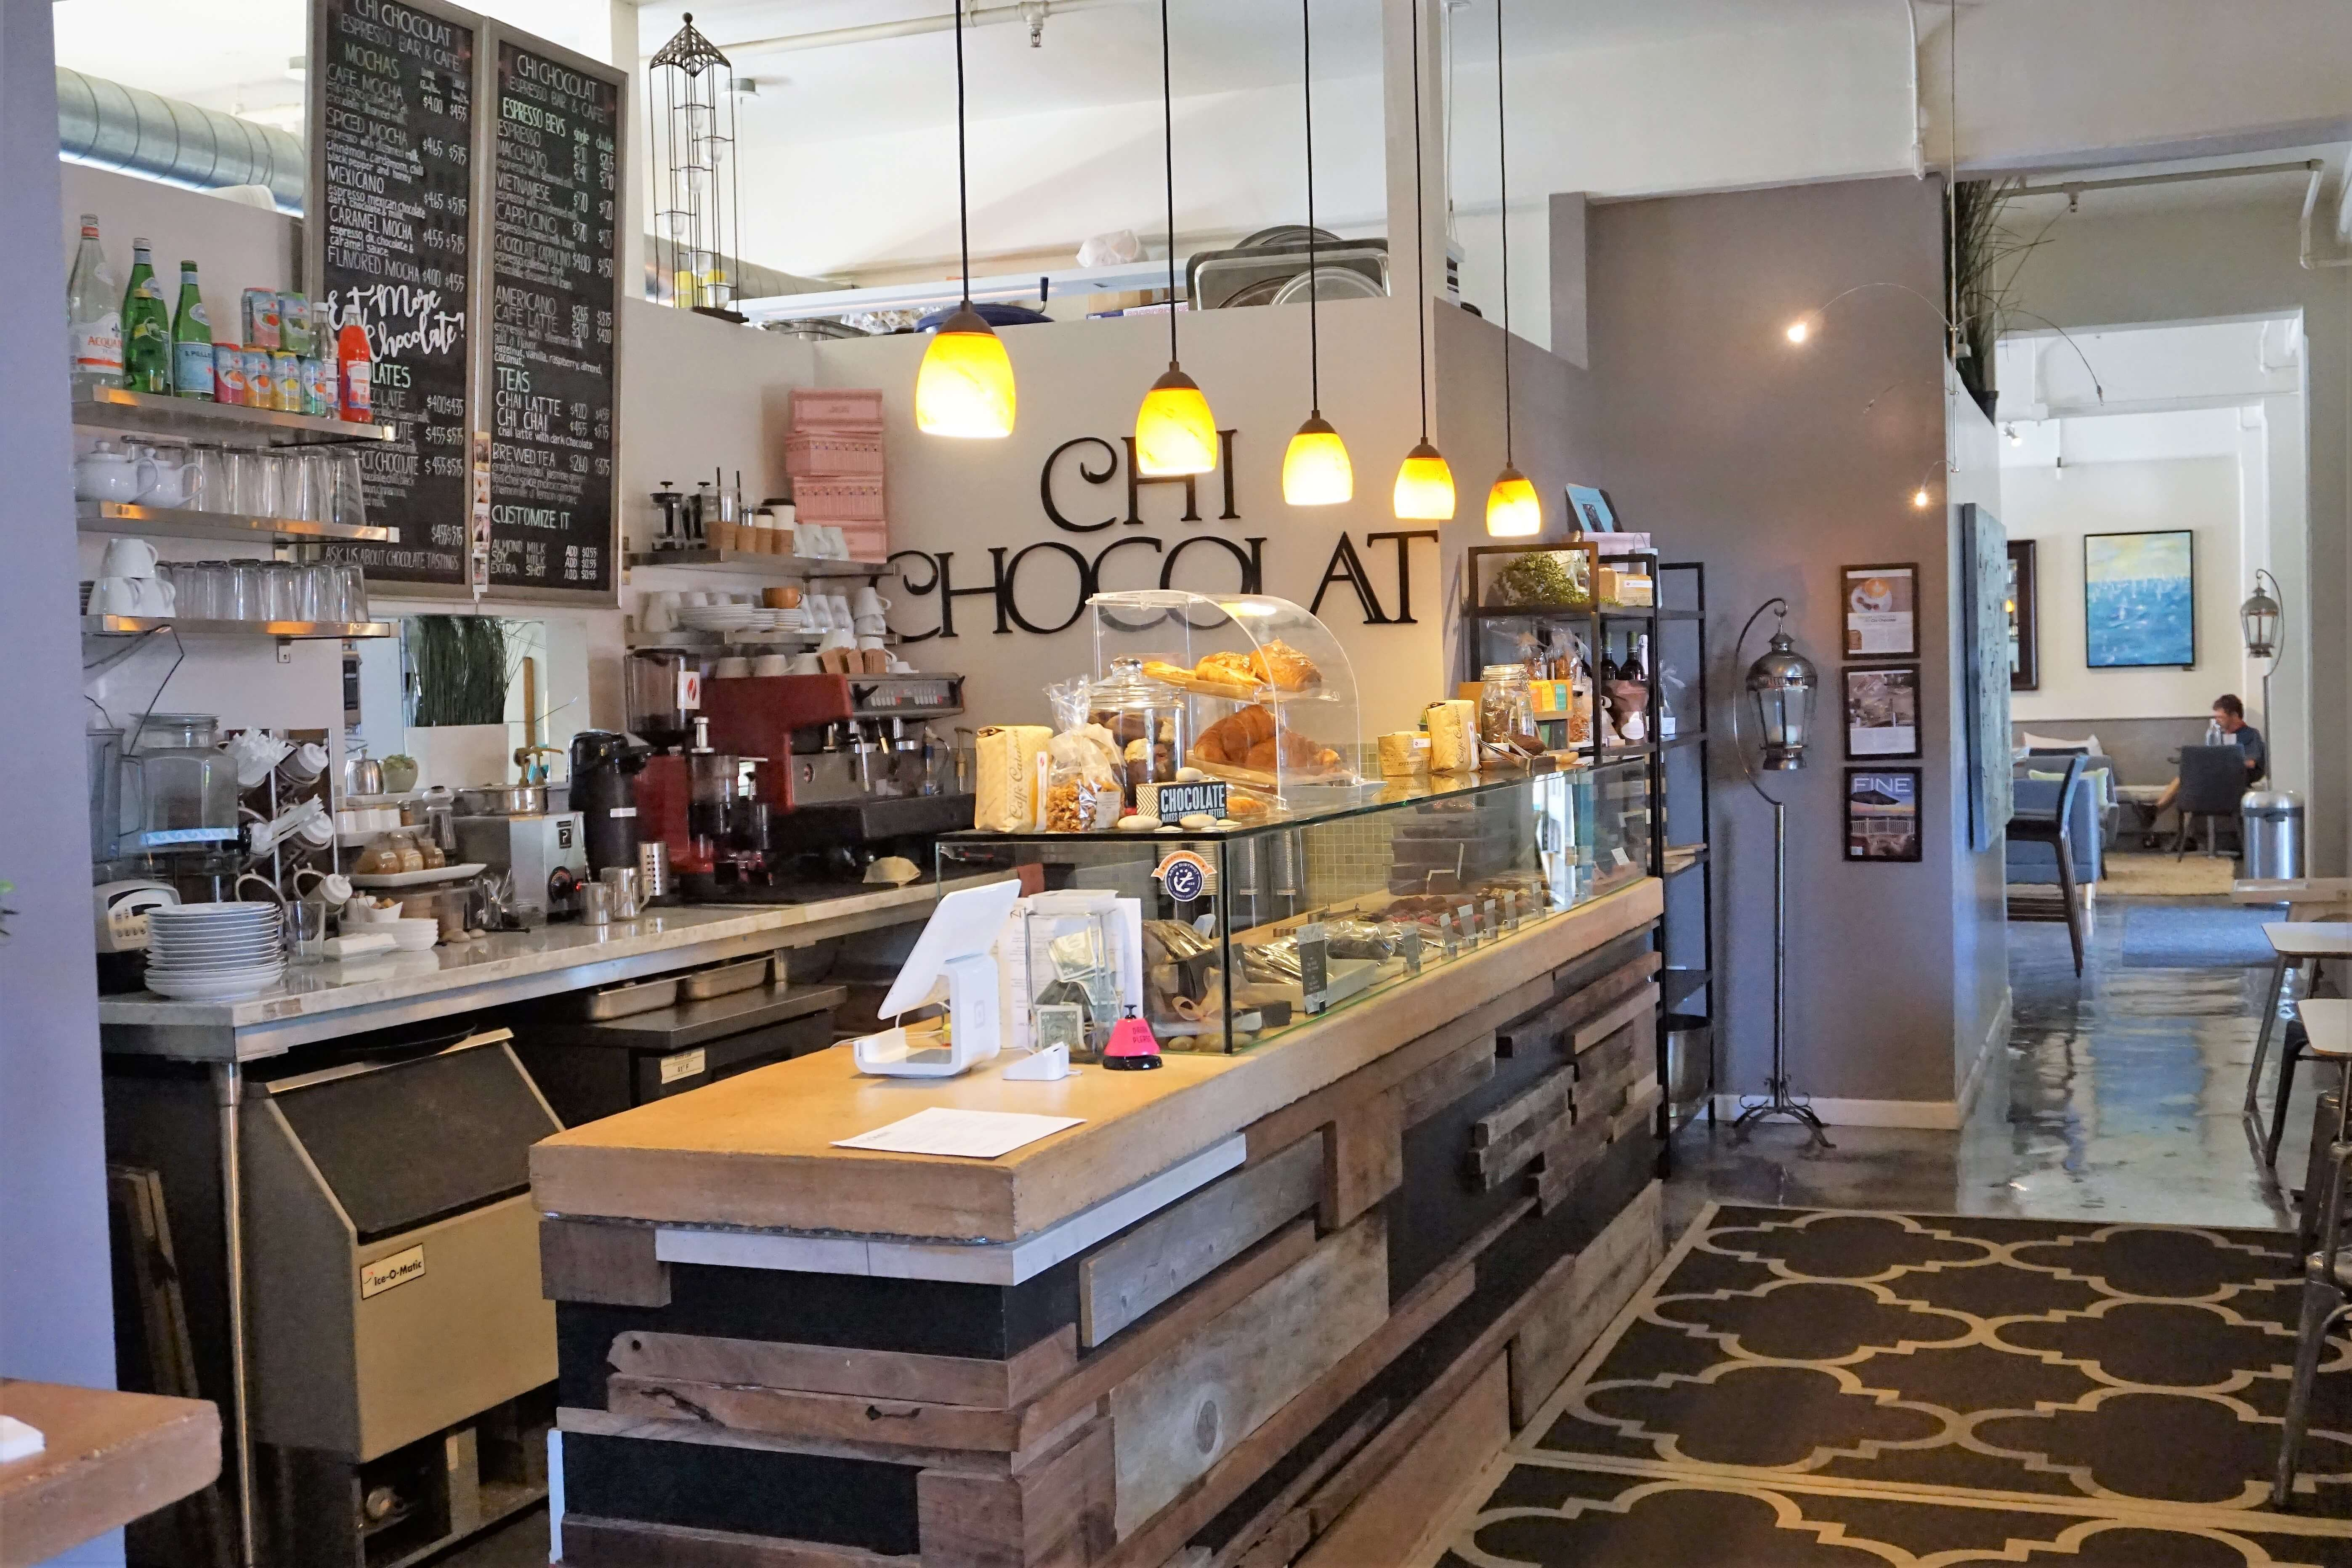 Chi Chocolat, a great place to stop for a sweet bite